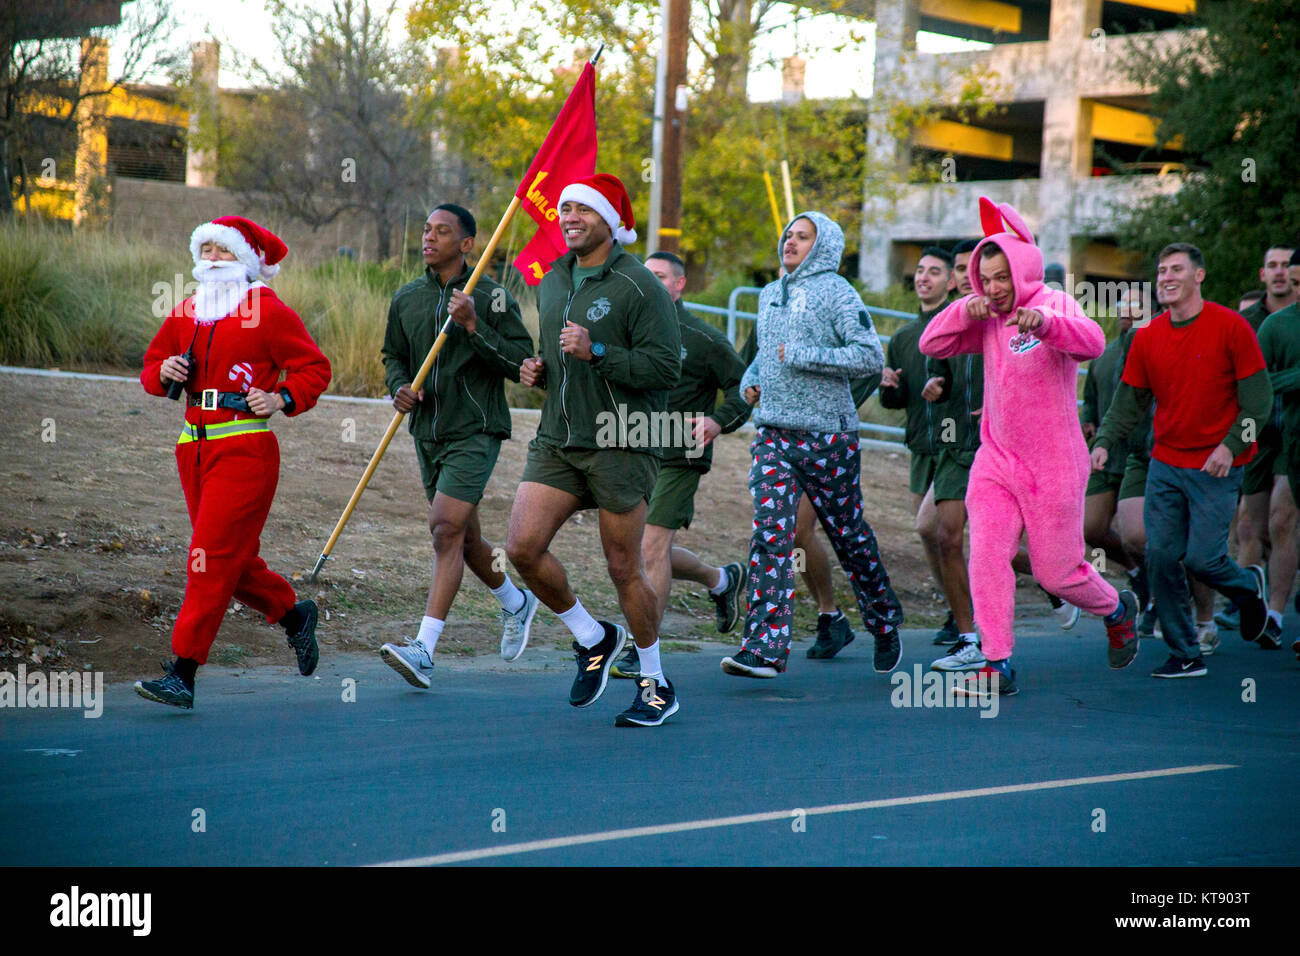 Run With The Marines Stockfotos & Run With The Marines Bilder - Alamy